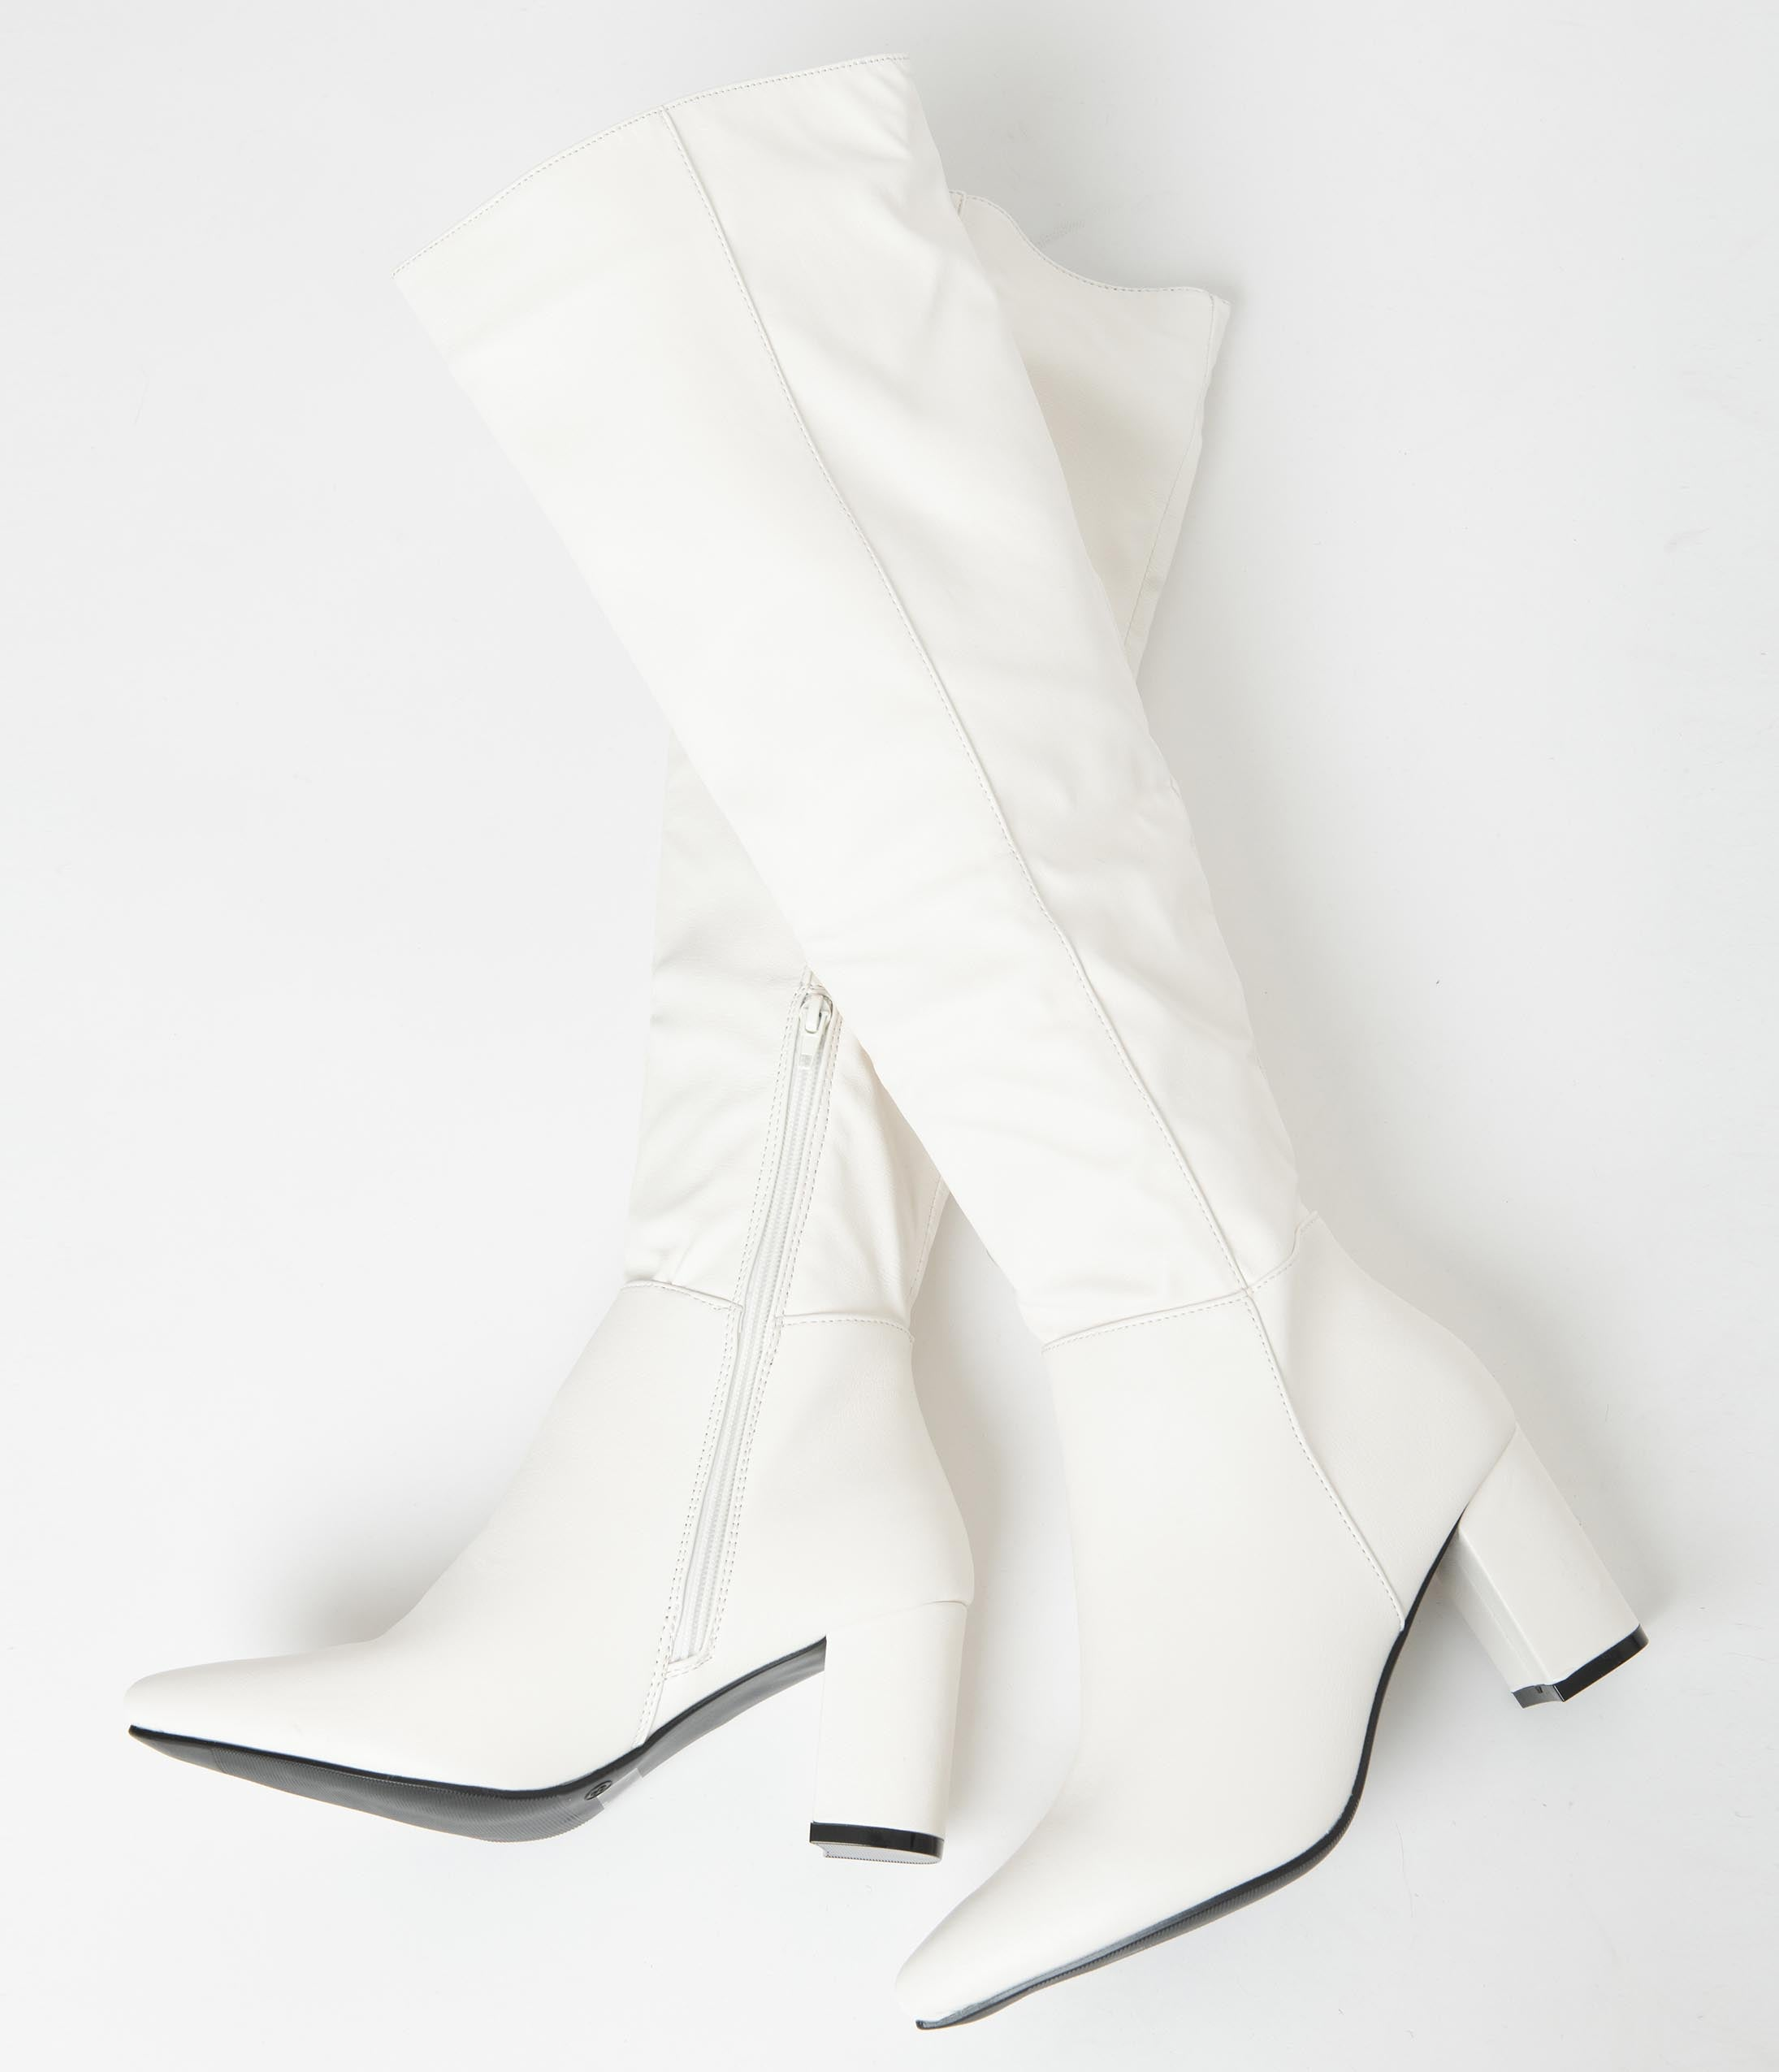 70s Shoes, Platforms, Boots, Heels | 1970s Shoes Retro Style White Leatherette Knee High Boots $68.00 AT vintagedancer.com